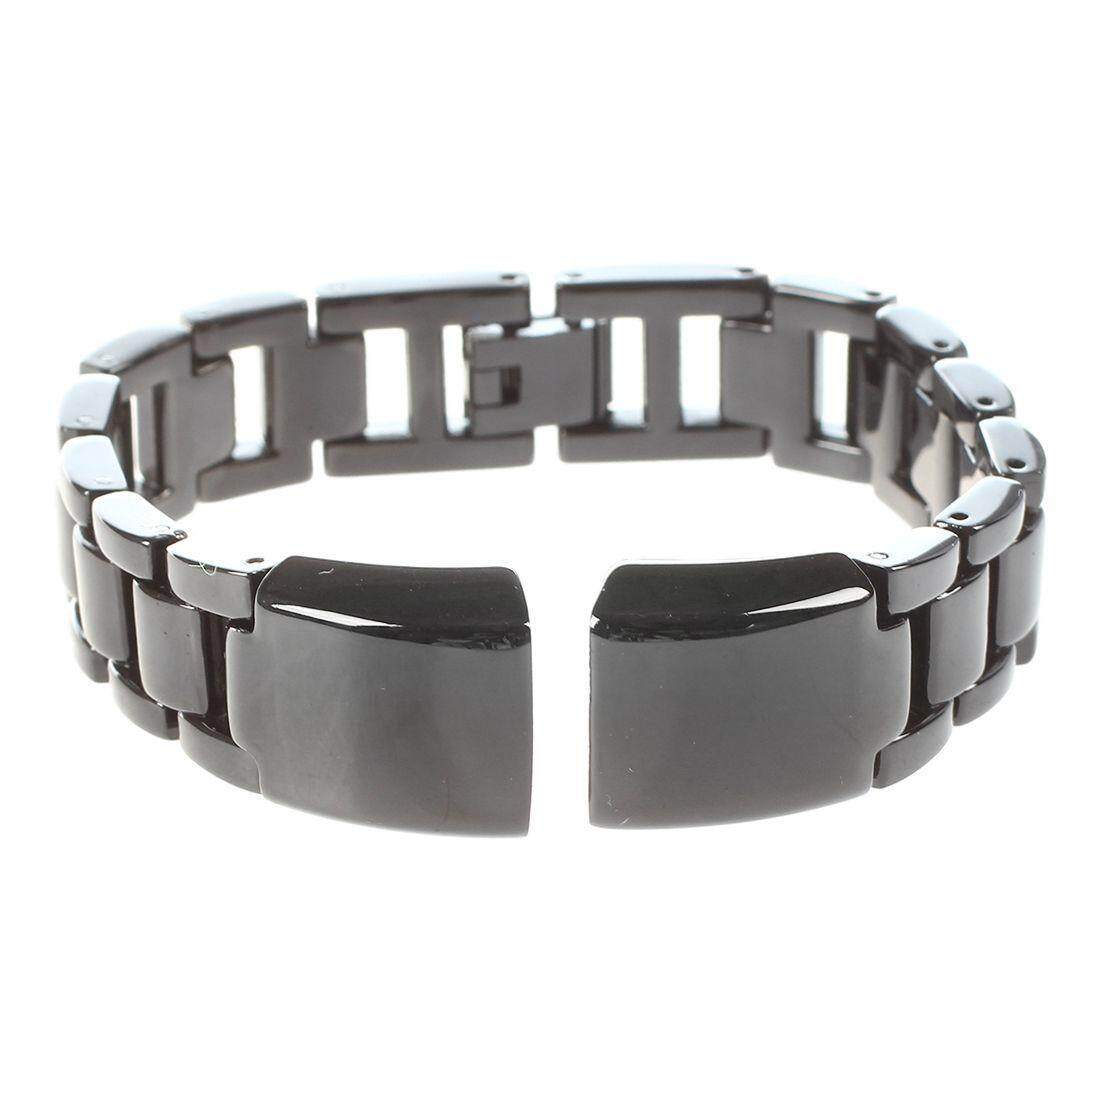 Stainless Steel Bracelet Watch Band Strap For Fitbit Alta Smart Tracker Black Malaysia